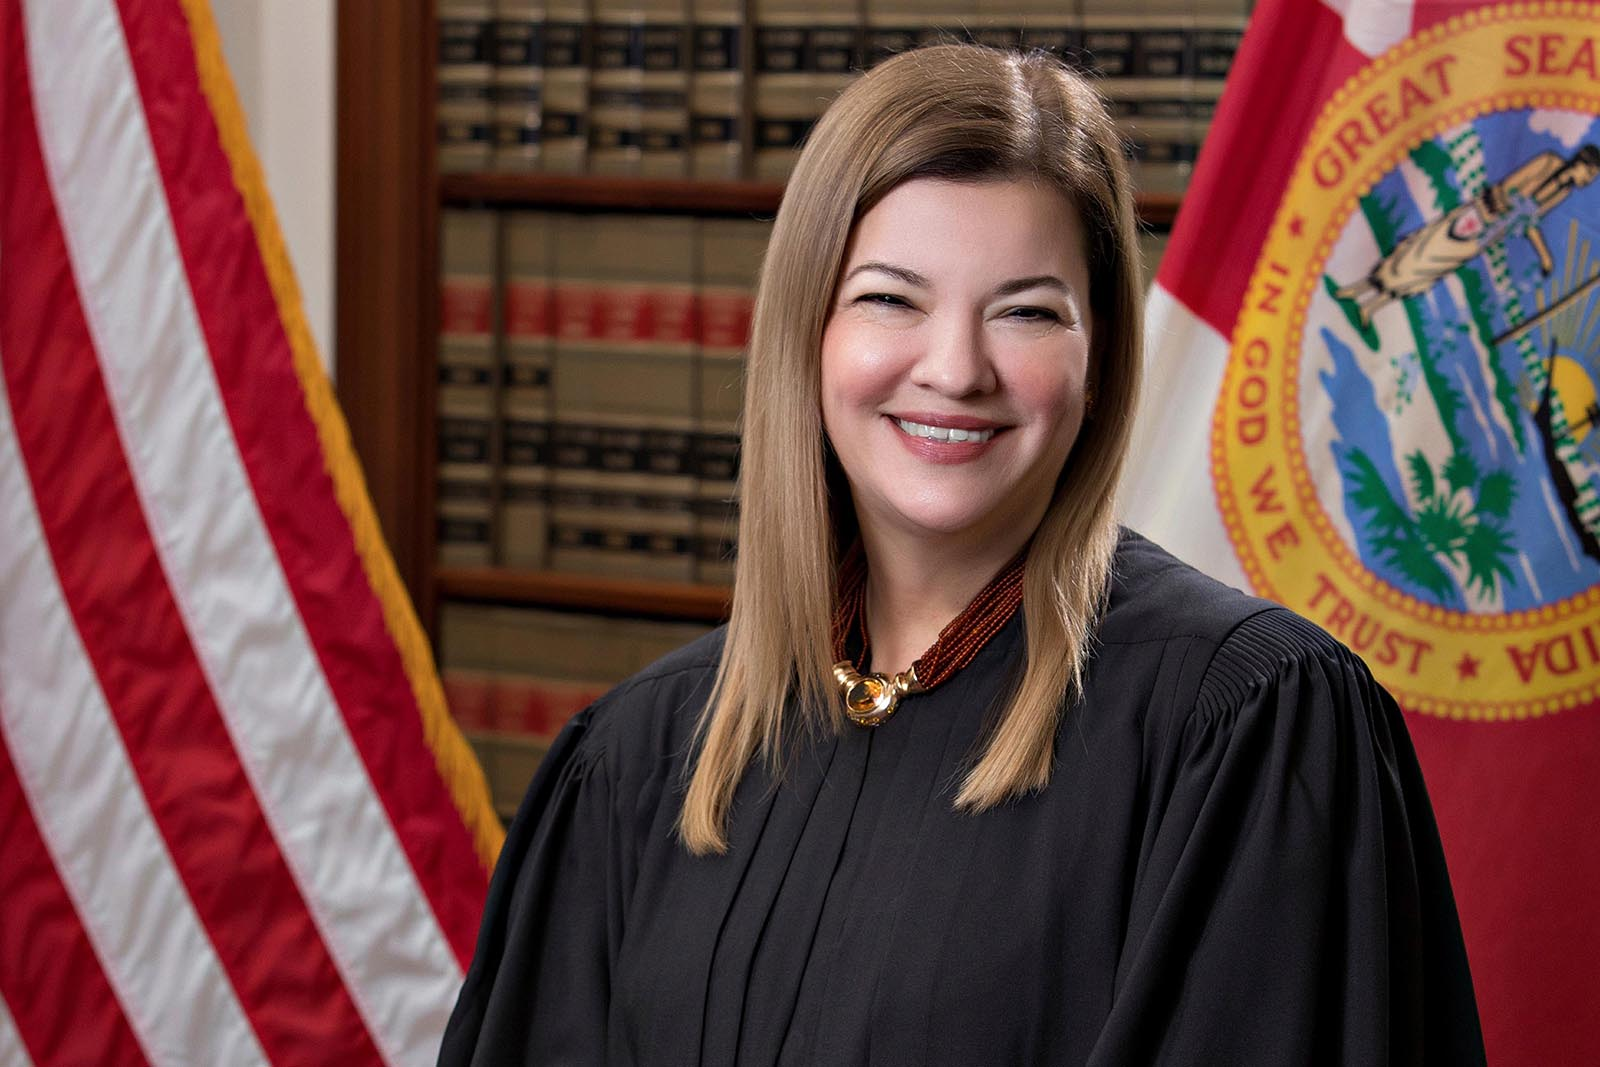 U.S. Circuit Judge Barbara Lagoa, of the United States Court of Appeals for the Eleventh Circuit, is shown in this official undated photo released by the Florida Supreme Court.